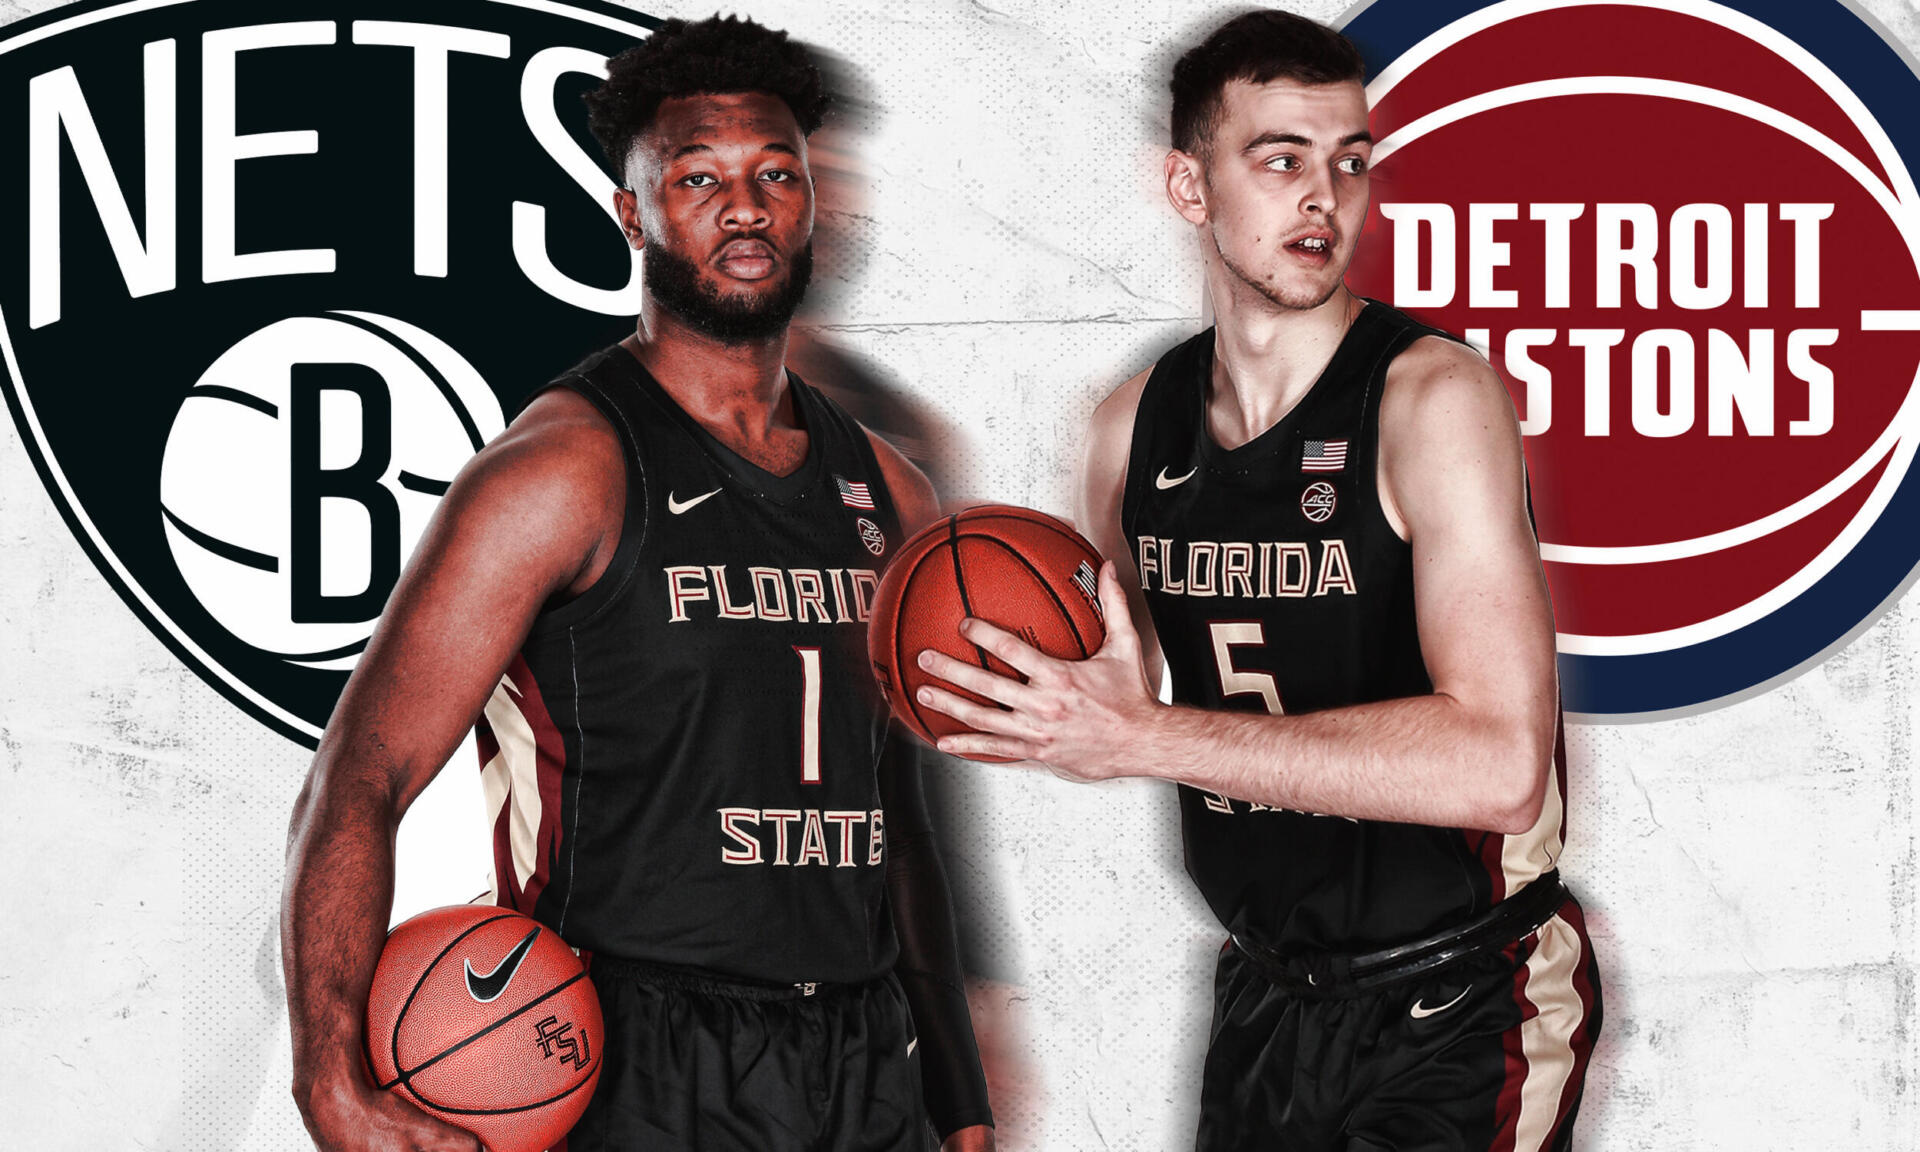 Koprivica To Detroit; Gray to Nets in NBA Draft